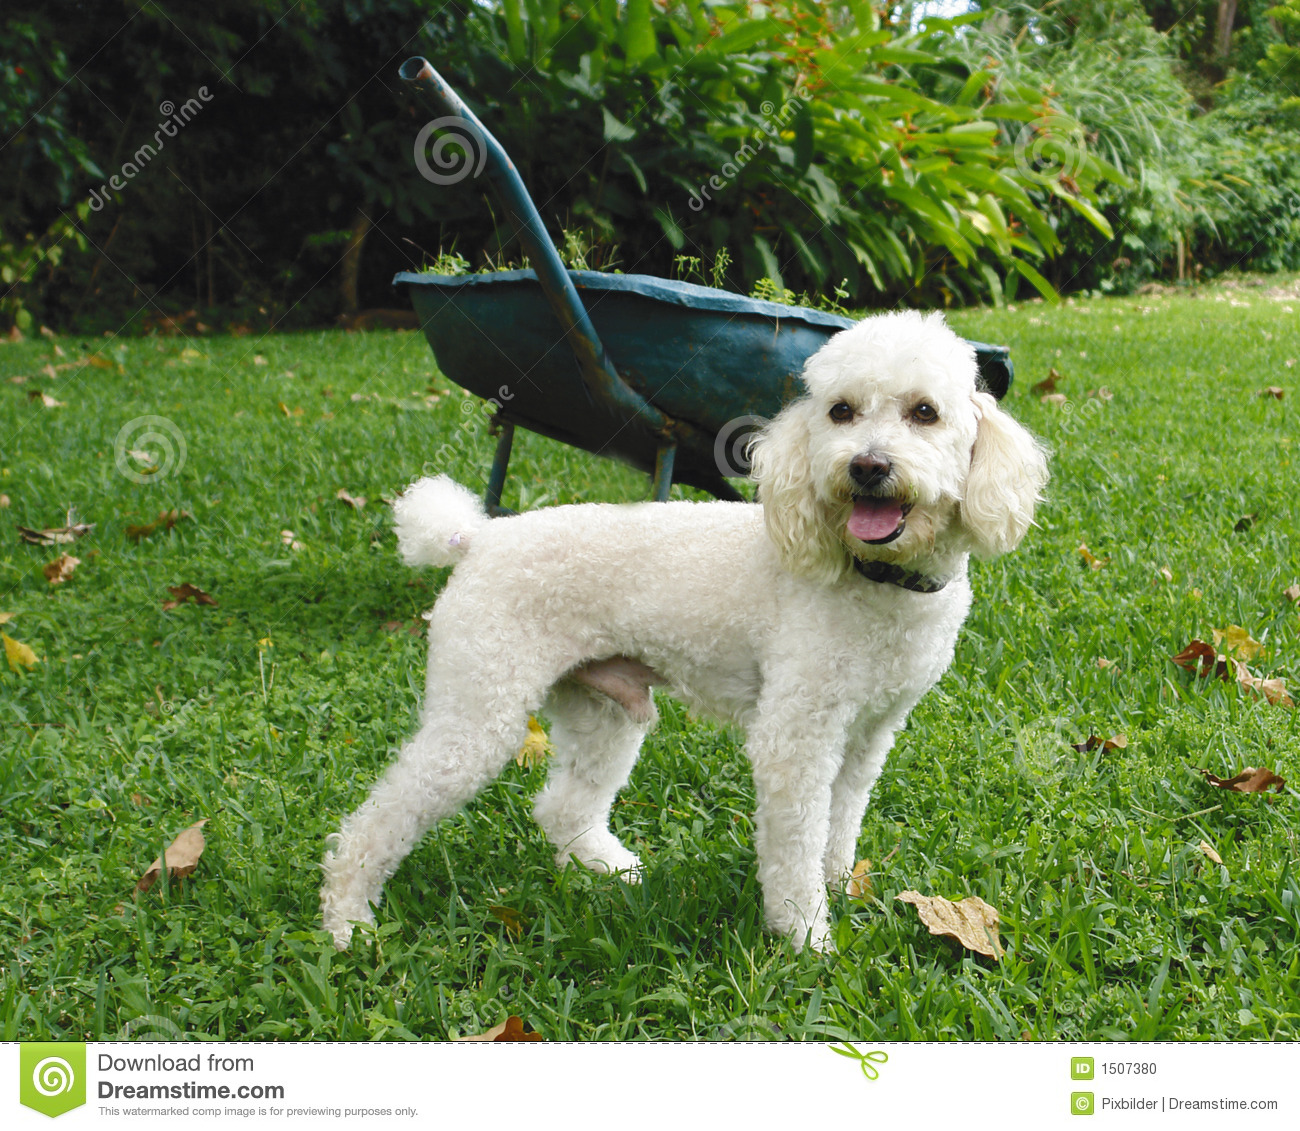 Pure breed white french poodle standing in front of a wheel barrel.